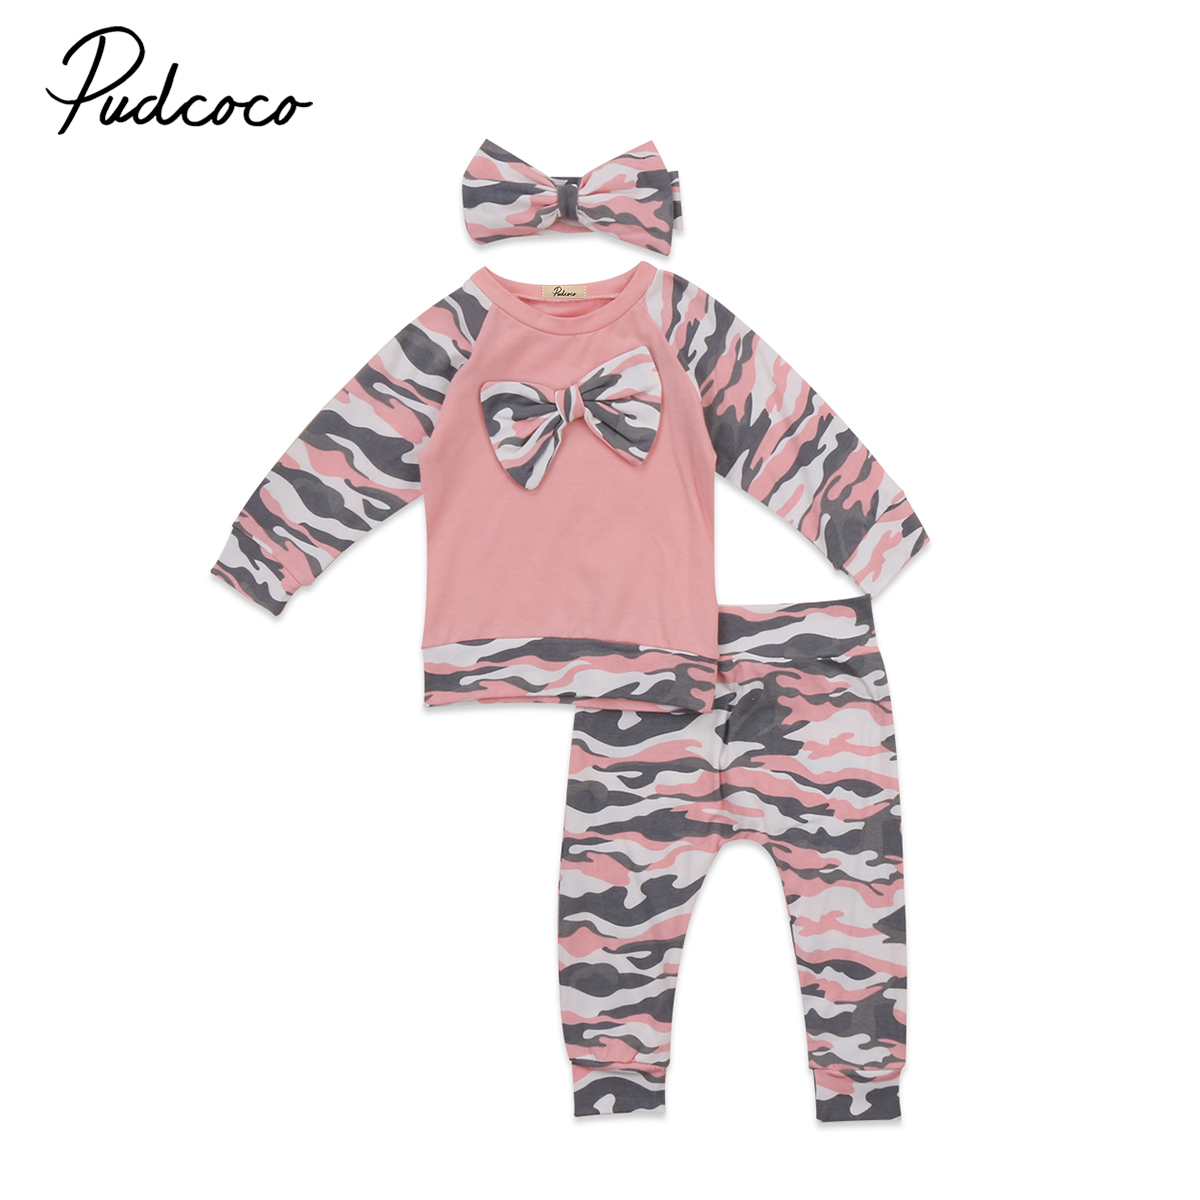 2017 New Brand Toddler Infant Newborn Kids Baby girl T-shirt Long Sleeve Tops Pants Headband 3Pcs Outfits Set Pink Camo Clothes